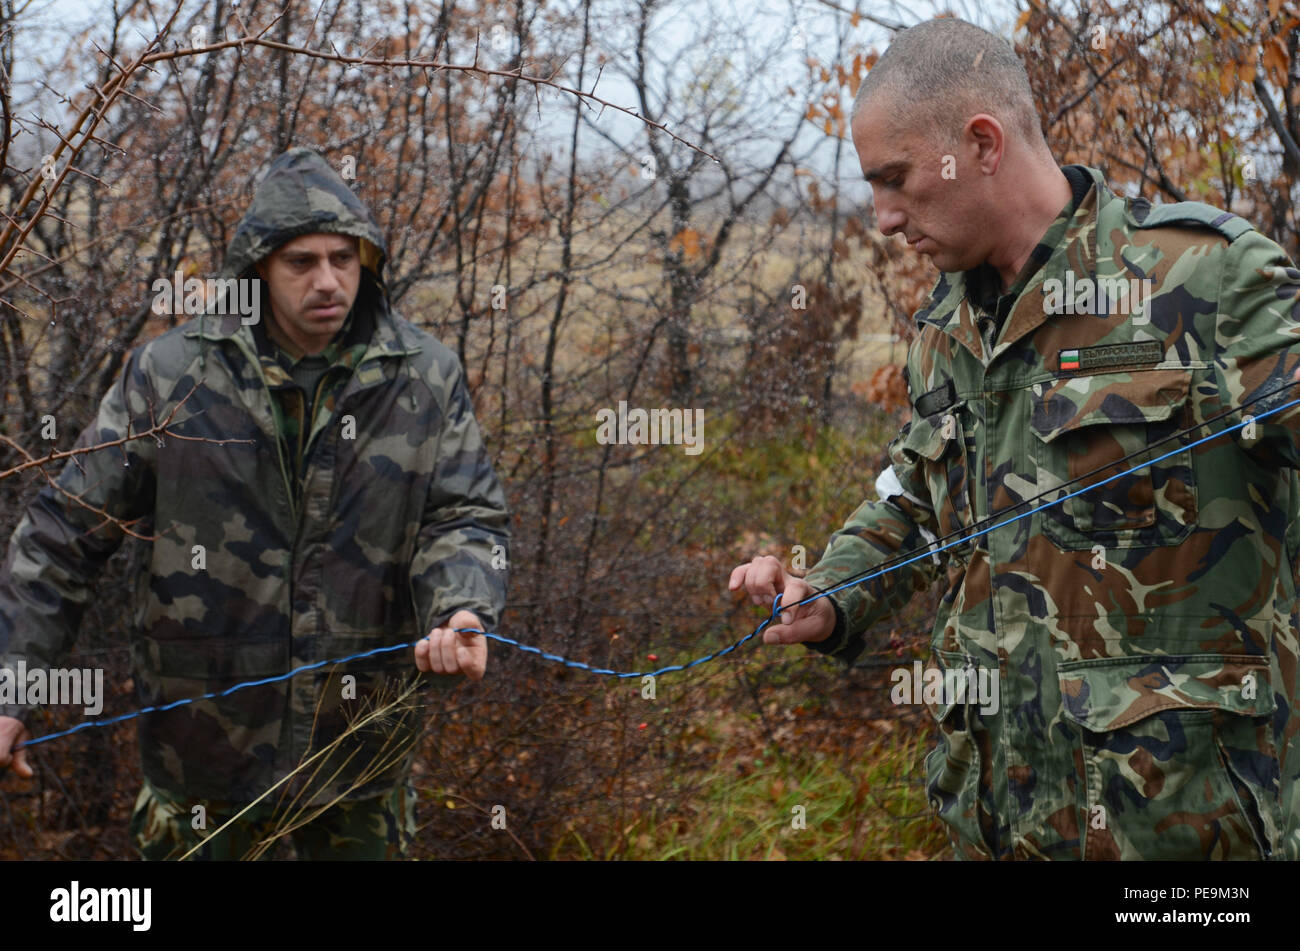 Bulgarian soldiers of 1-61st Mechanized Battalion prepare wiring for the simulated explosions of enemy attacks during Exercise Peace Sentinel at Novo Selo Training Center, Bulgaria, Nov. 24, 2015. (U.S. Army photo by Staff Sgt. Steven M. Colvin/Released) - Stock Image